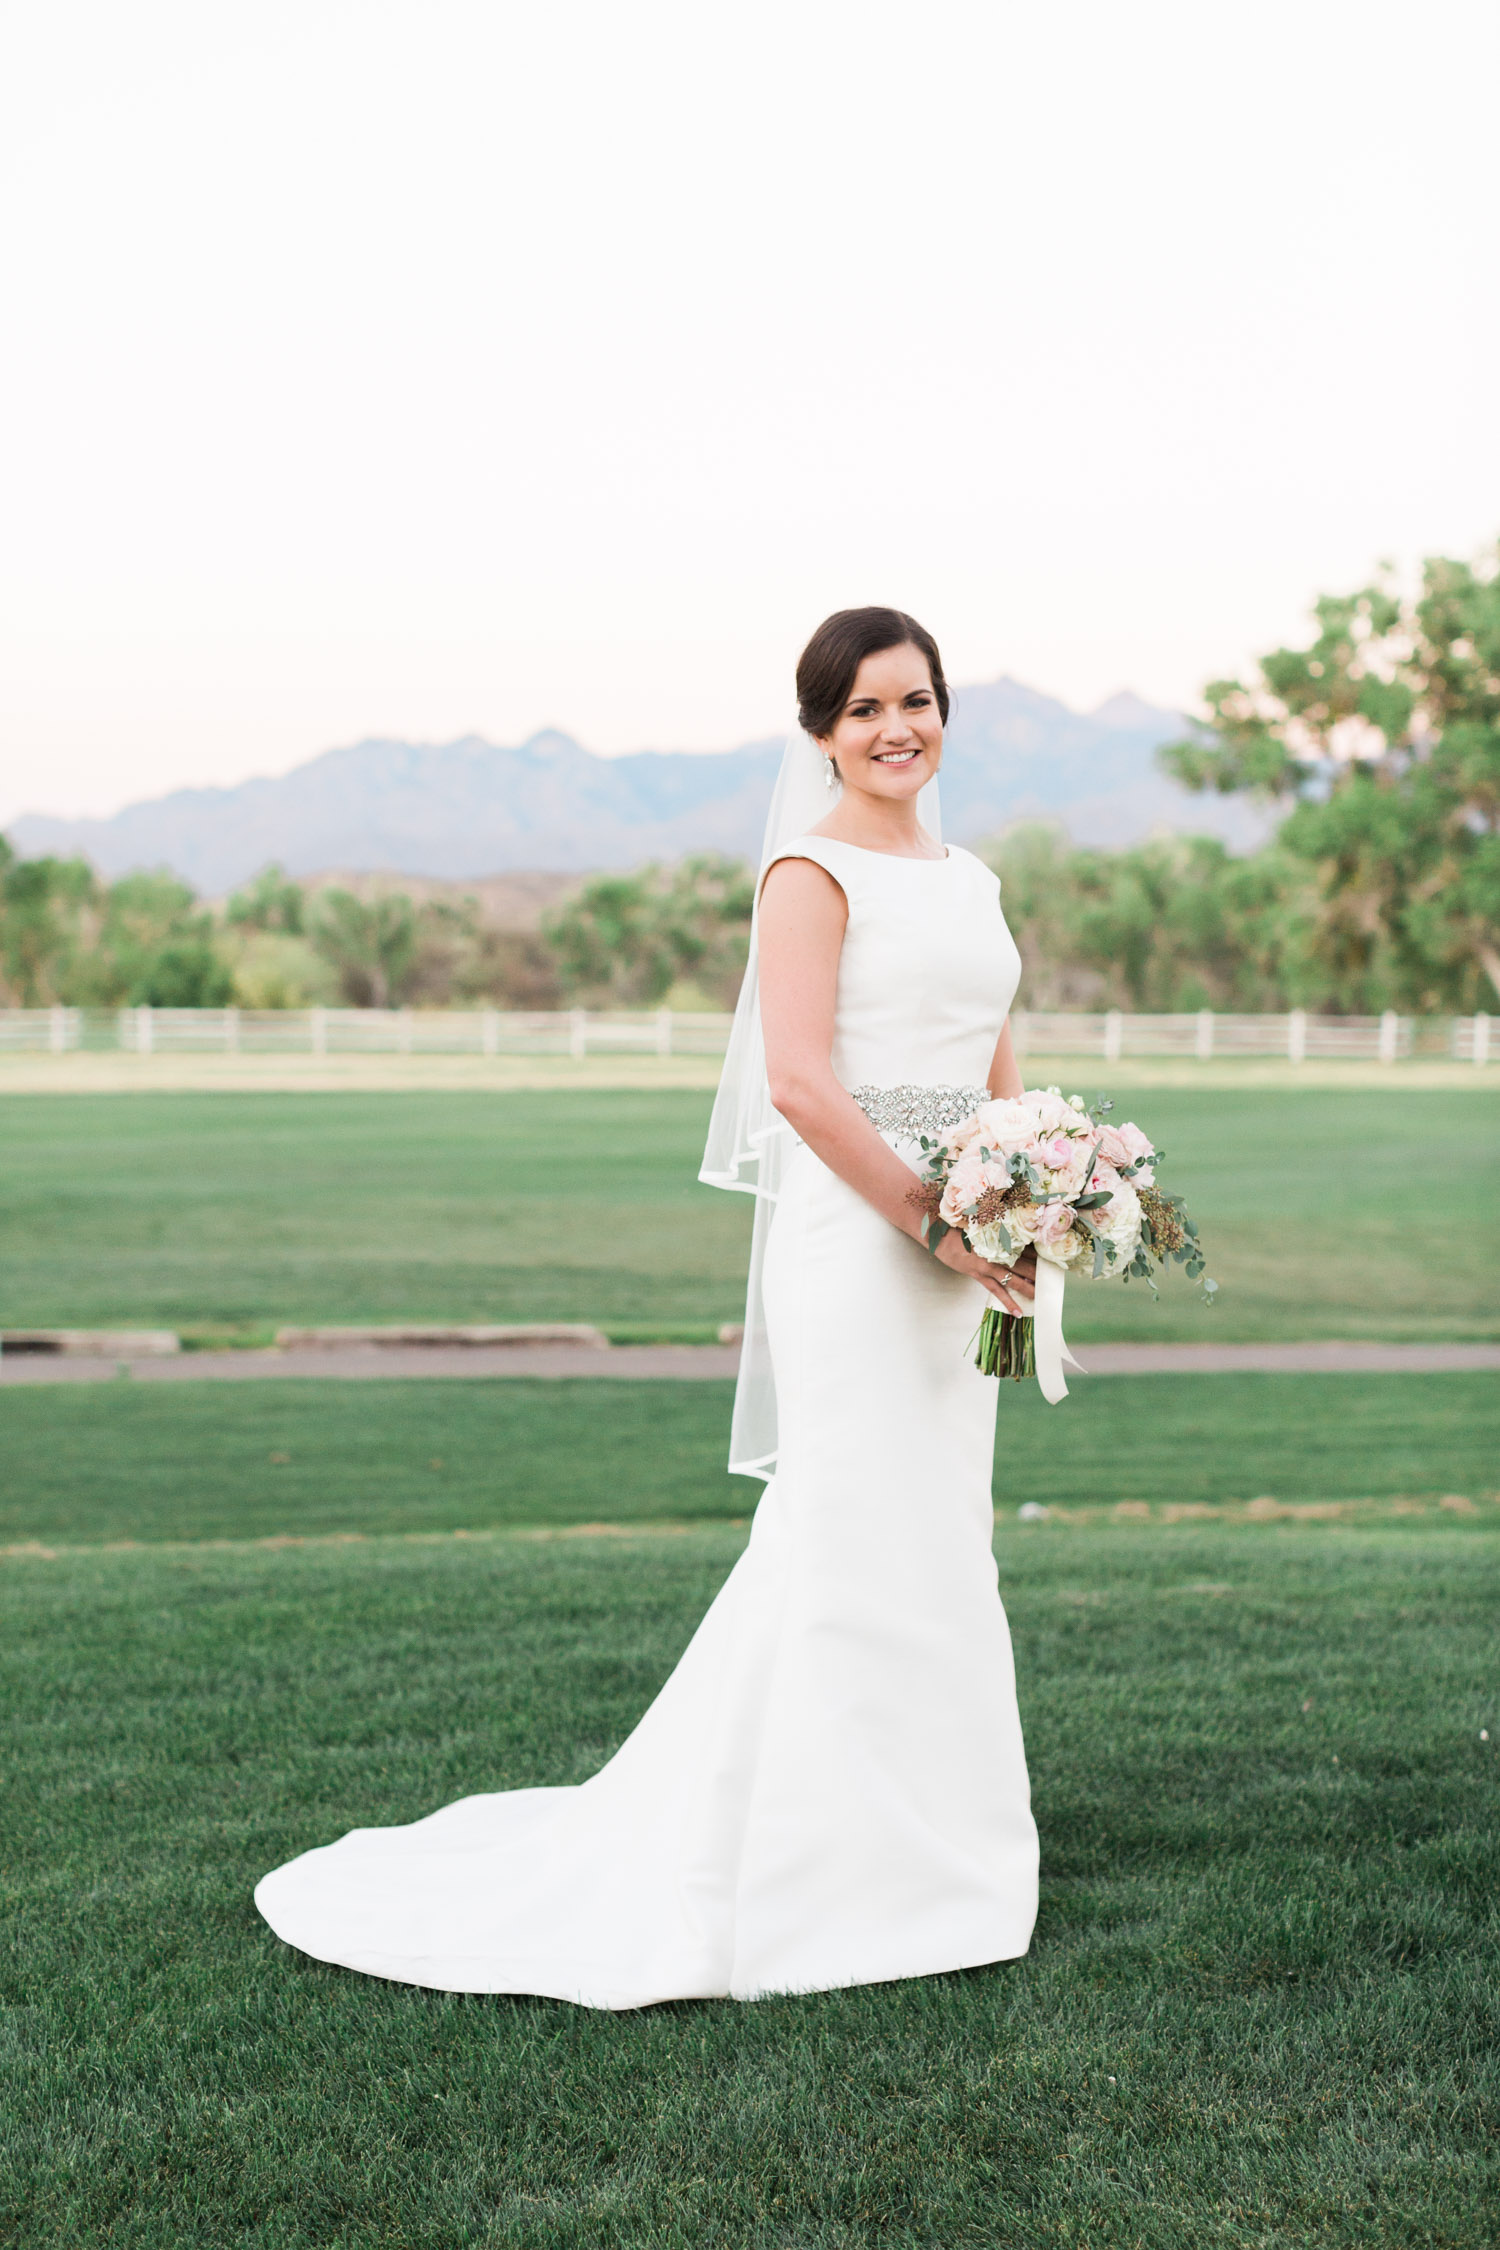 Bride wearing a fitted Pronovias gown,holding flowers with mountain views in the background